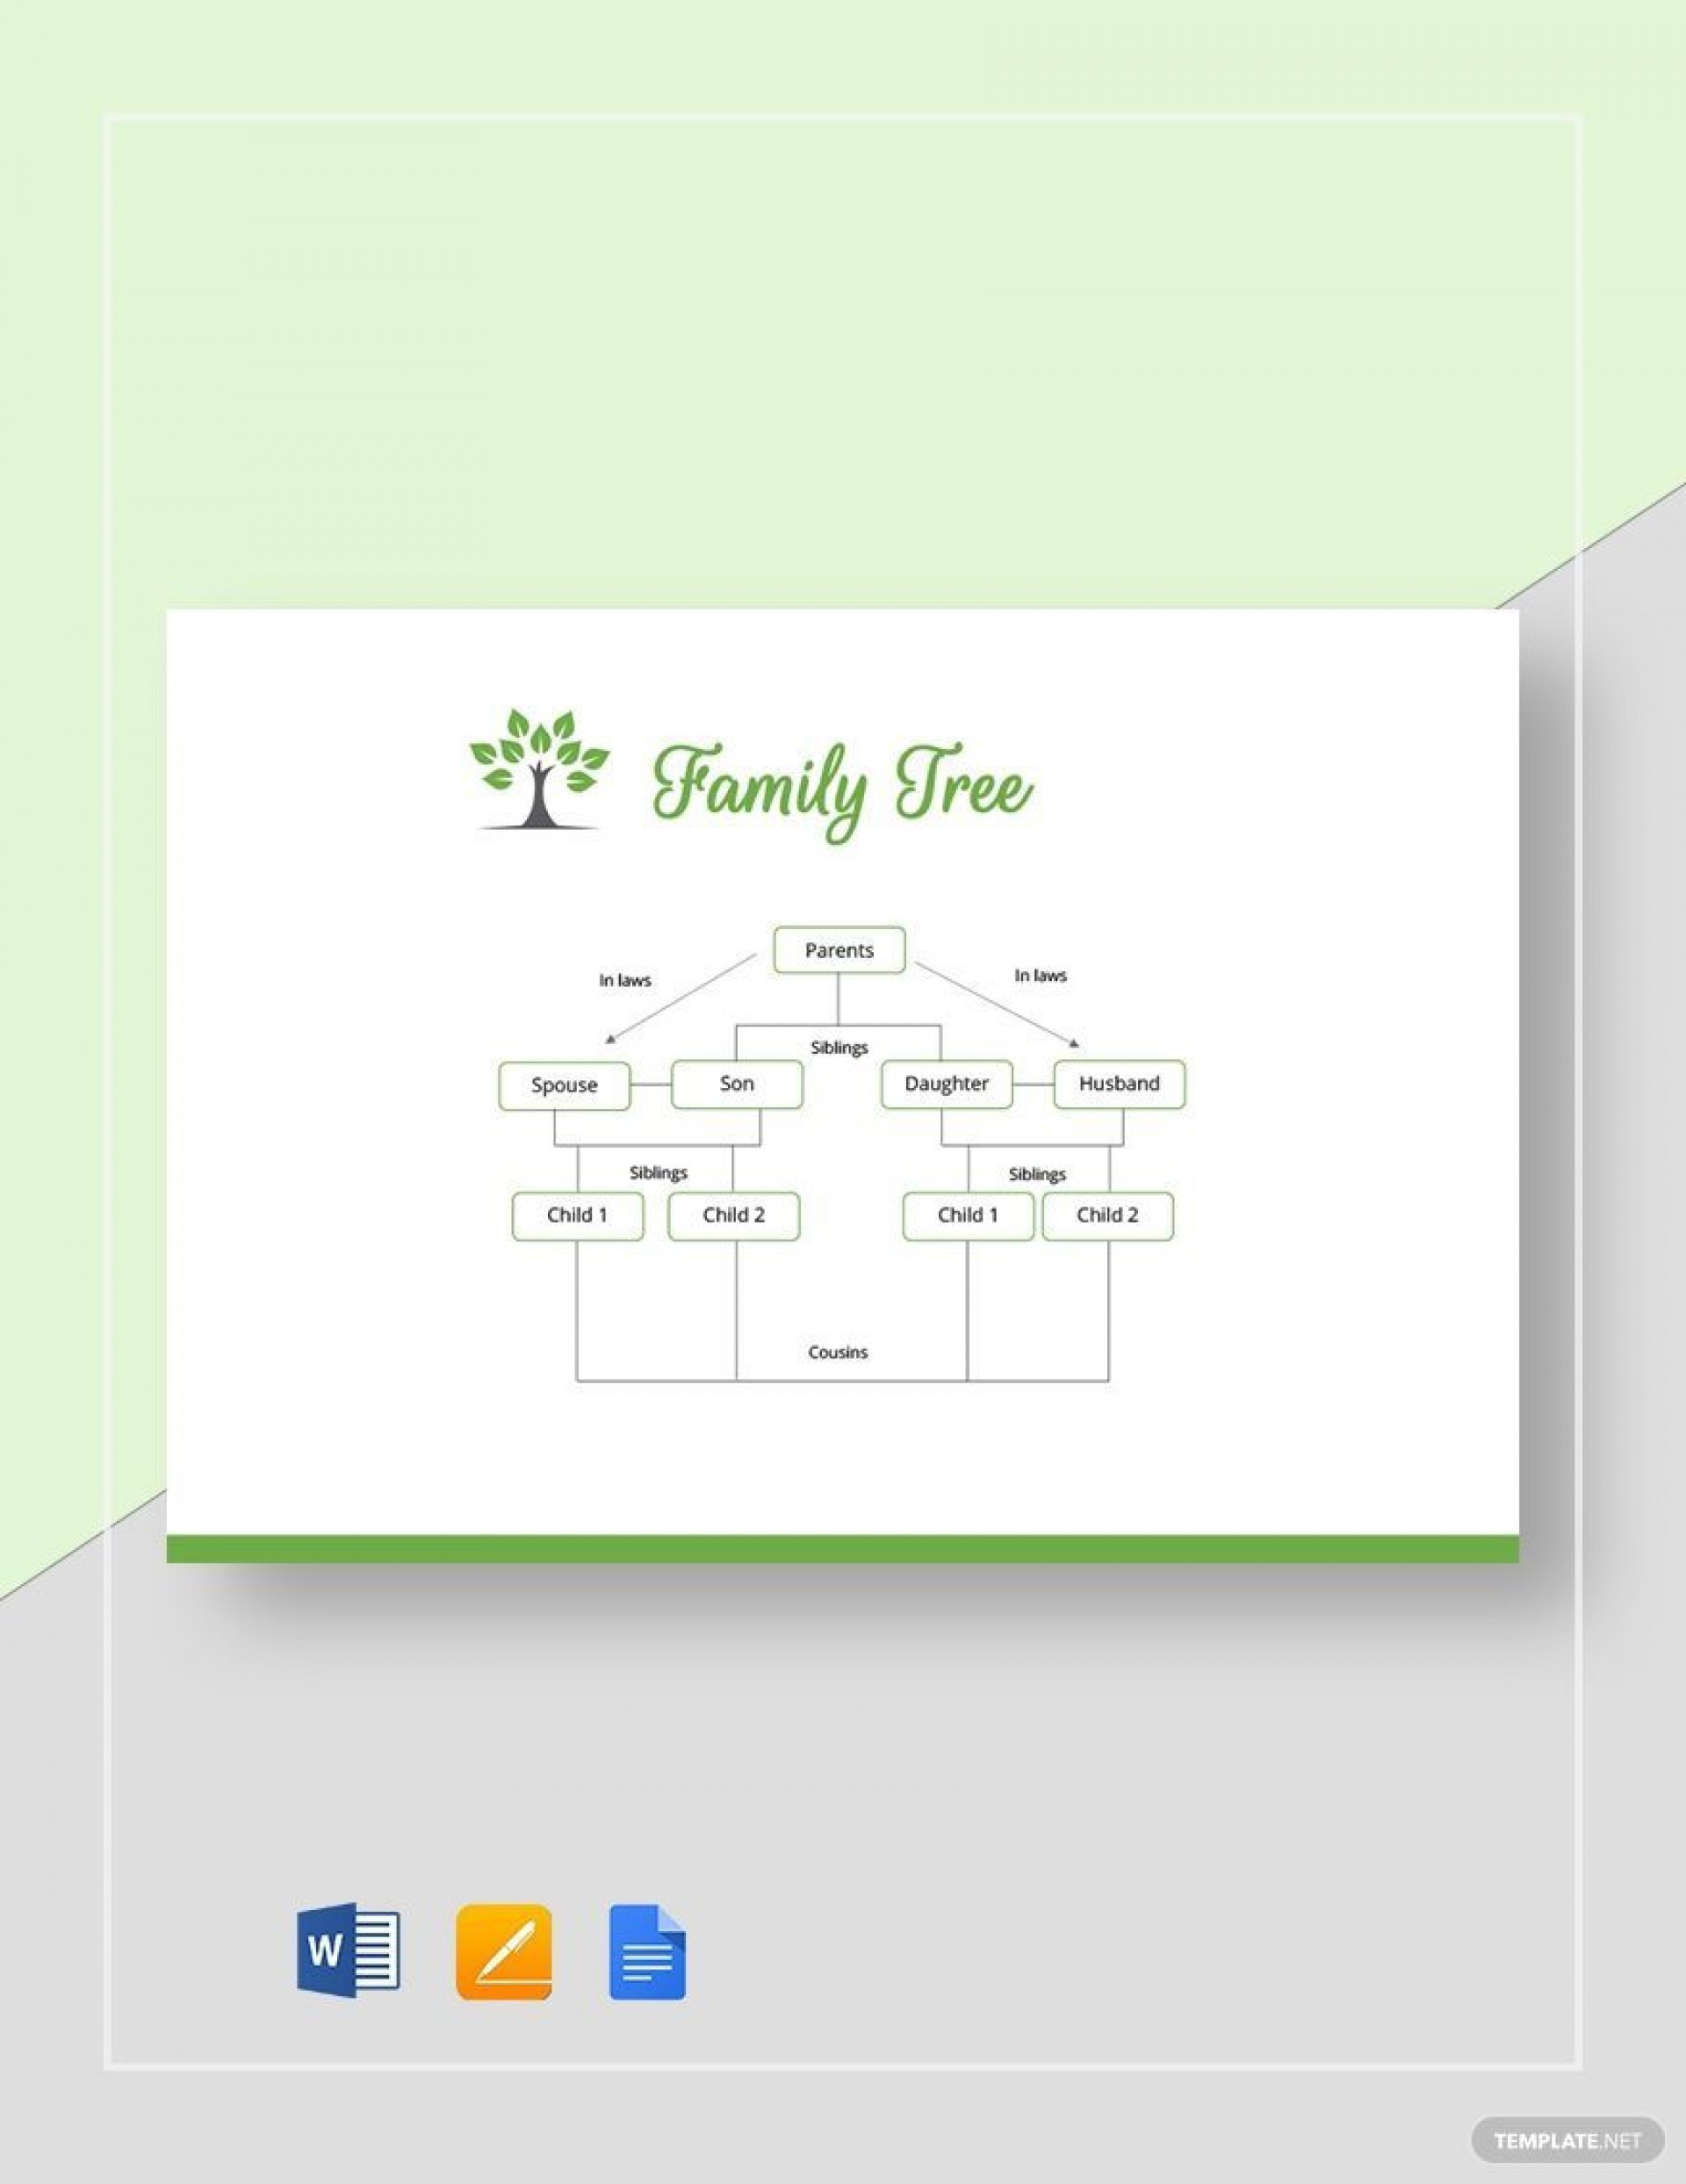 002 Surprising Family Tree Template Google Doc Image  Docs I There A On Free Editable1920